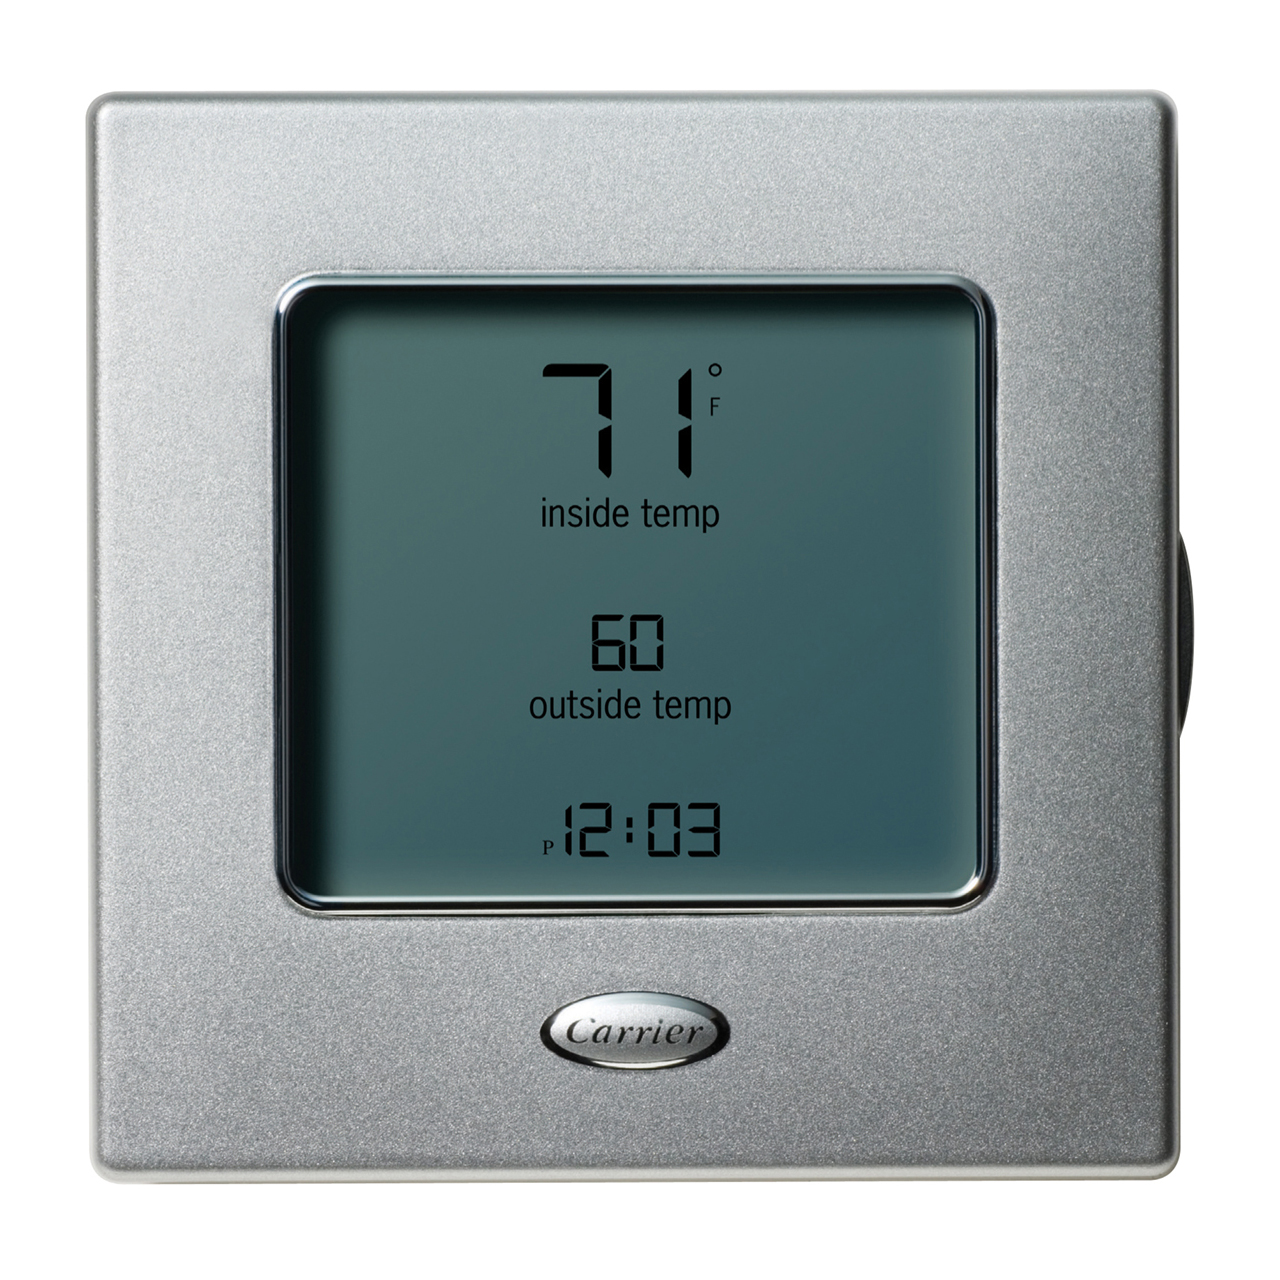 carrier-33CS2PPRH-03-non-communicating-programmable-thermostat